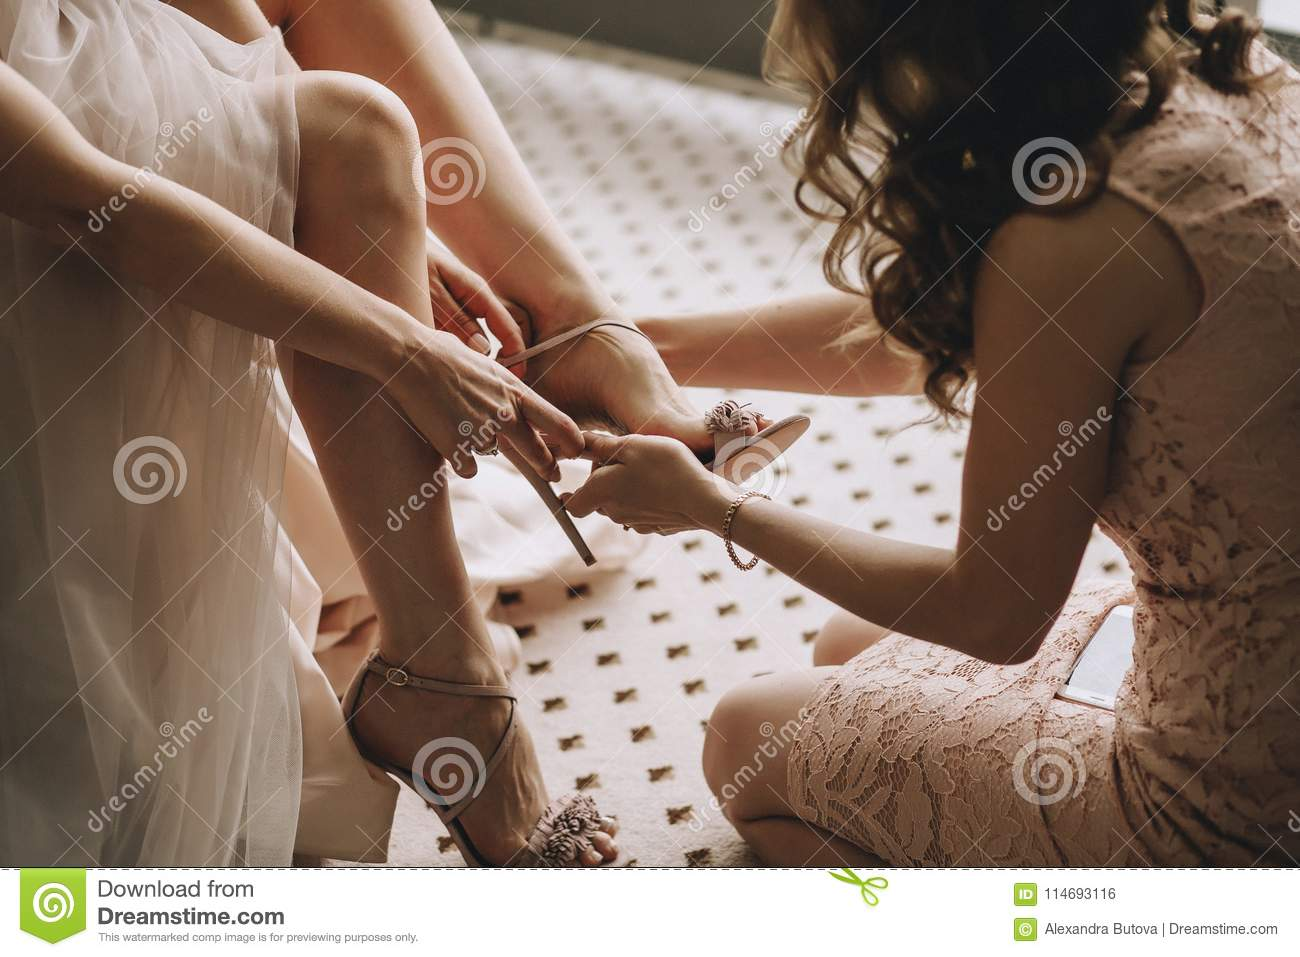 A girlfriend helps a bride to put on her wedding shoes. Beautiful female legs closeup